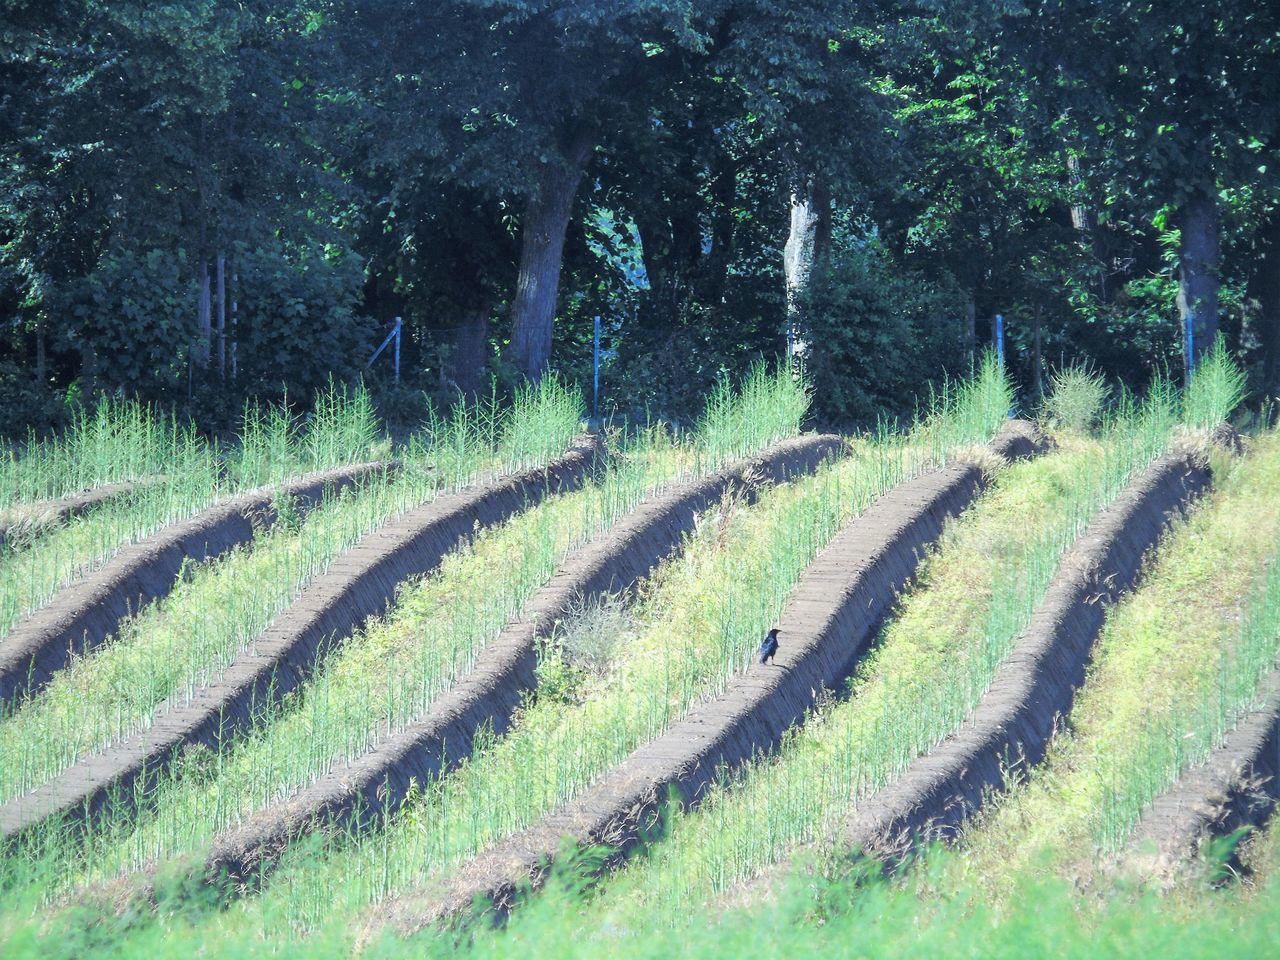 Agriculture Beauty In Nature Day Field Forest Grass Green Color Growth In A Row Landscape My Pont Of View Nature No People Outdoors Plant Rural Scene Scenics Spargelfeld Tranquil Scene Tranquility Tree